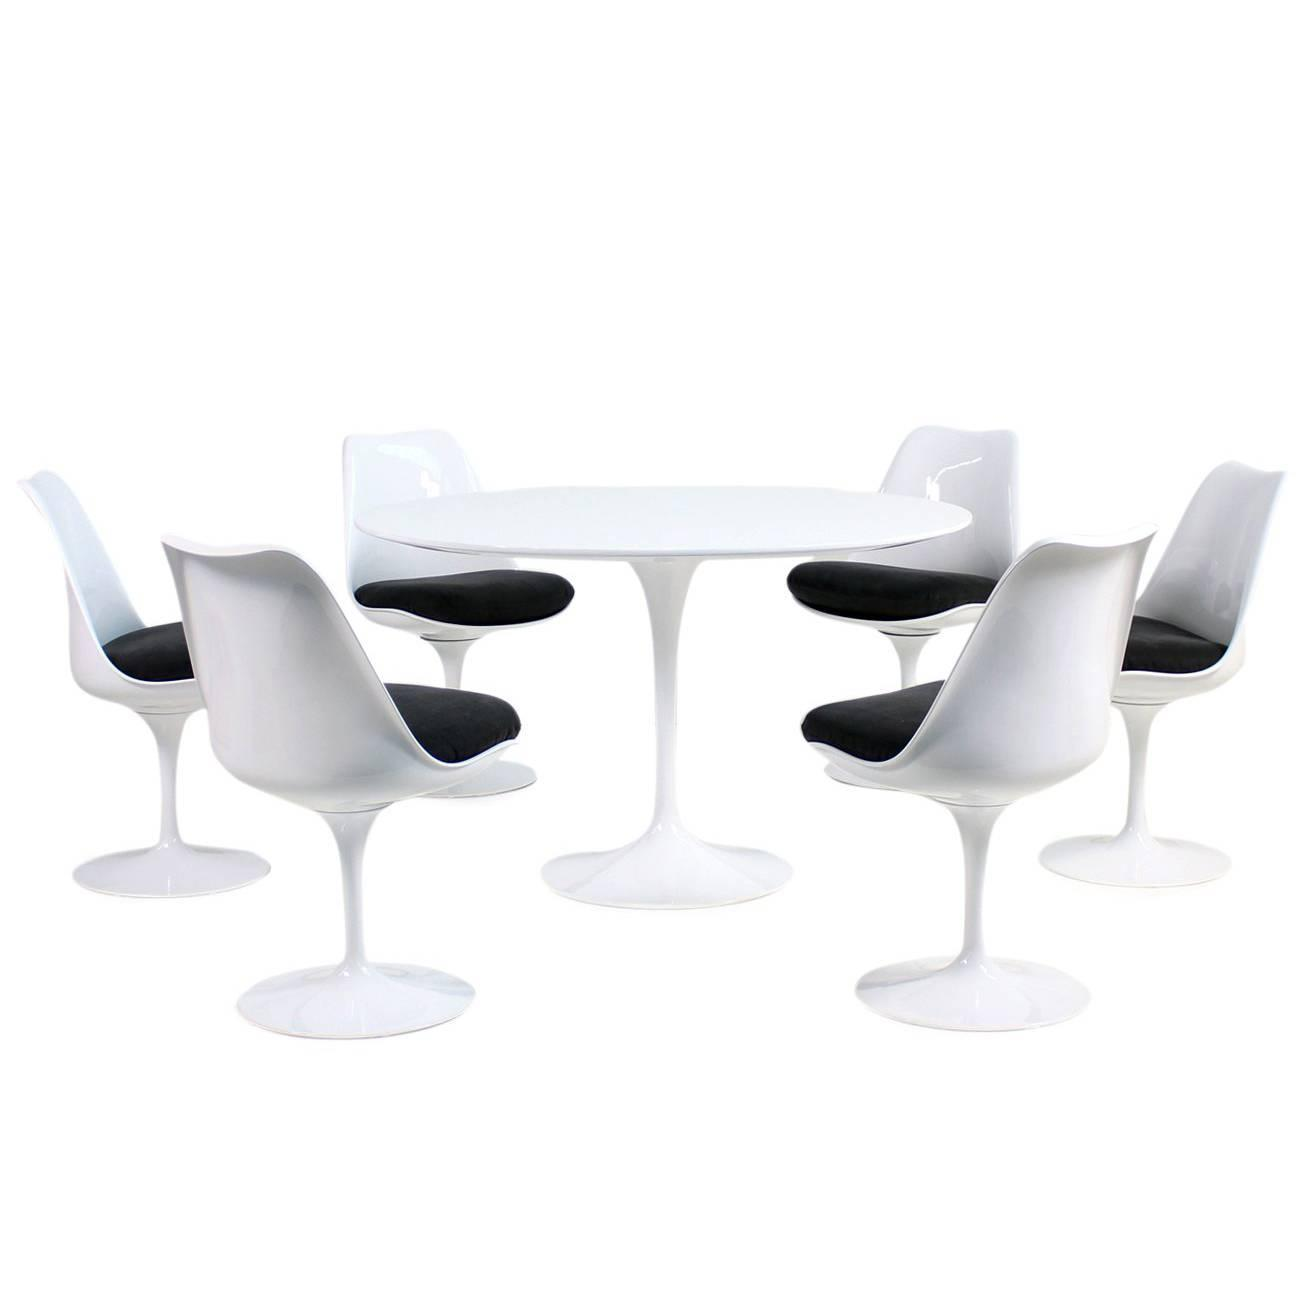 Saarinen Knoll Table 1960s Eero Saarinen Tulip Dining Table And Six Swivel Chairs Knoll International